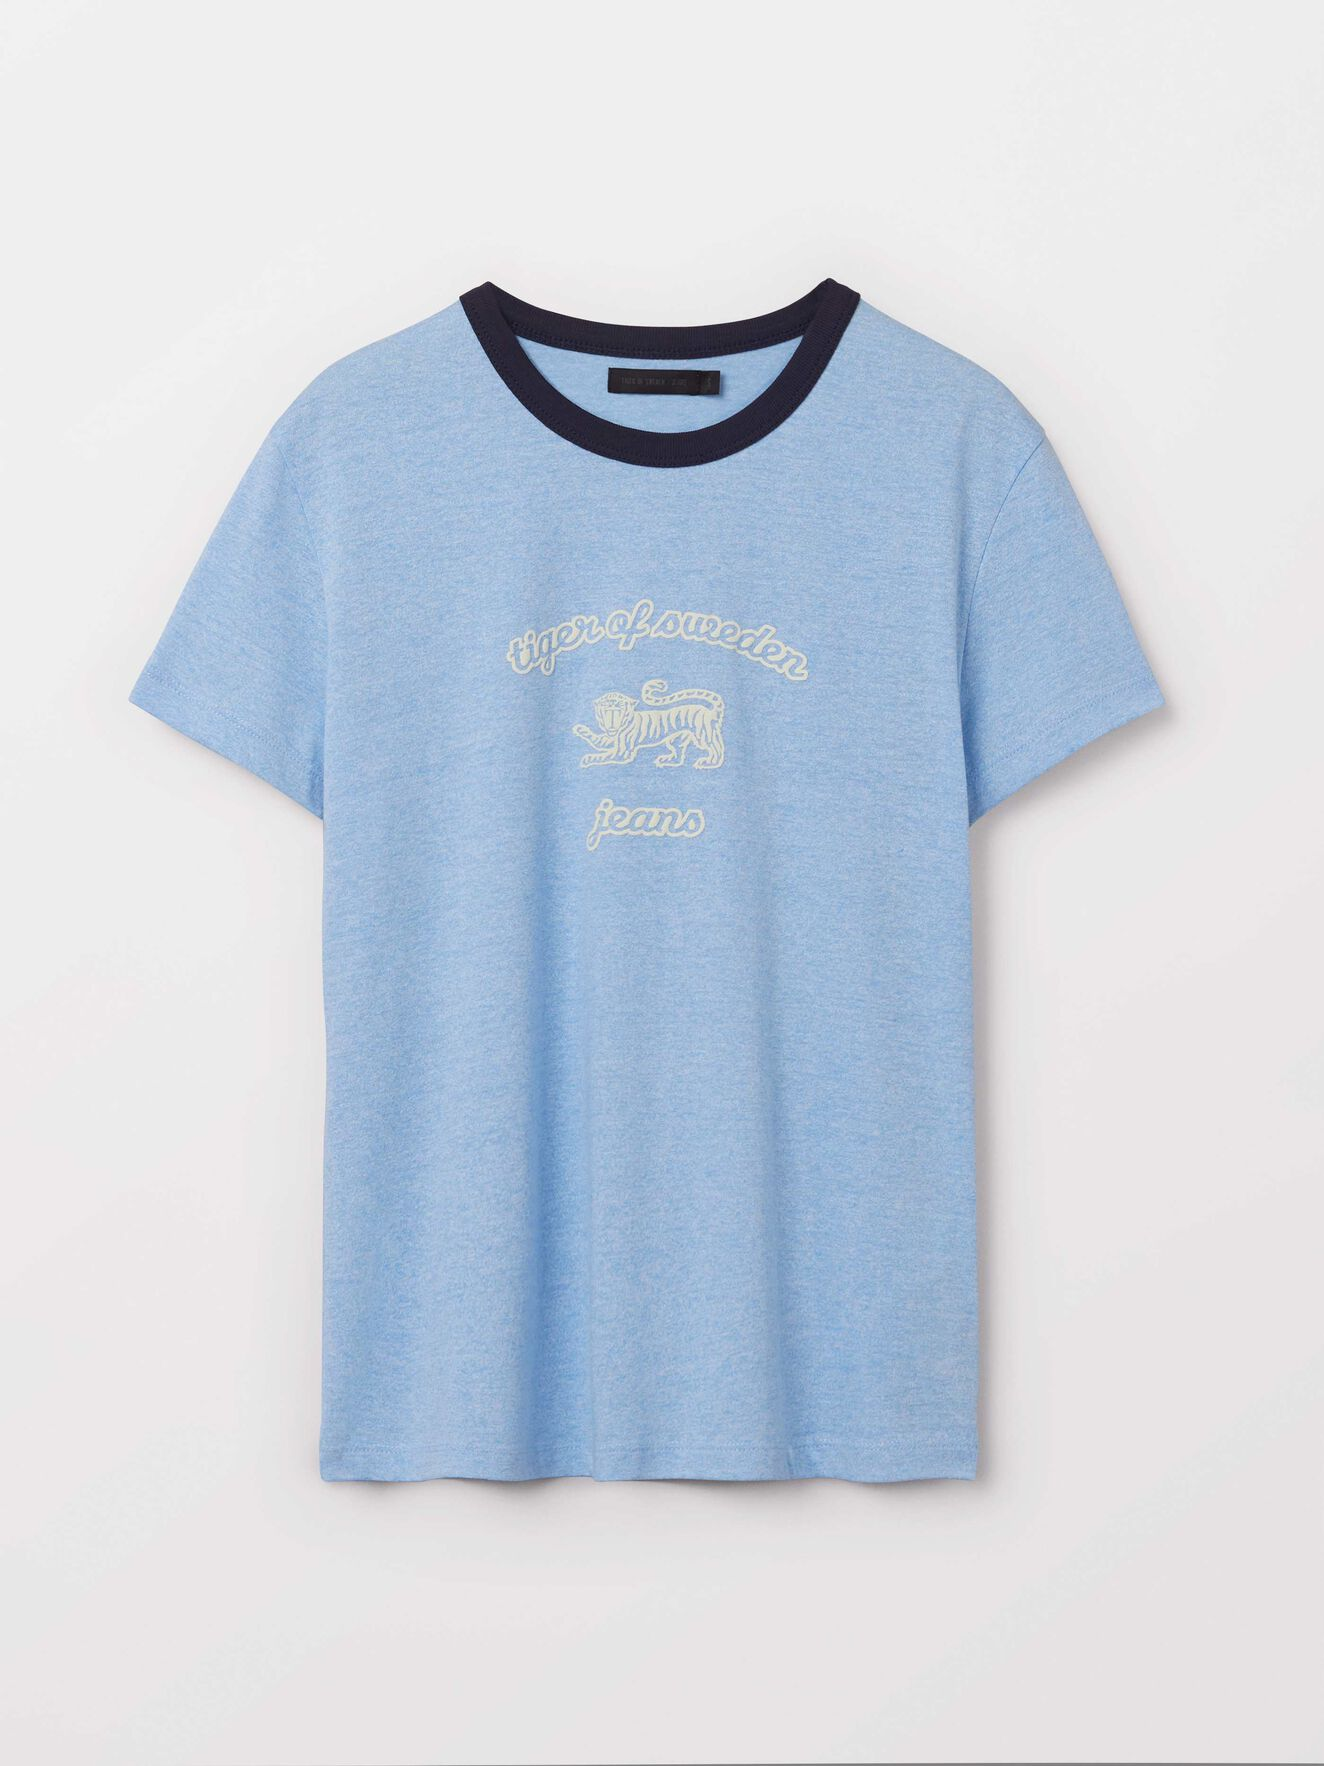 Dirty T-Shirt in Chambray Blue from Tiger of Sweden